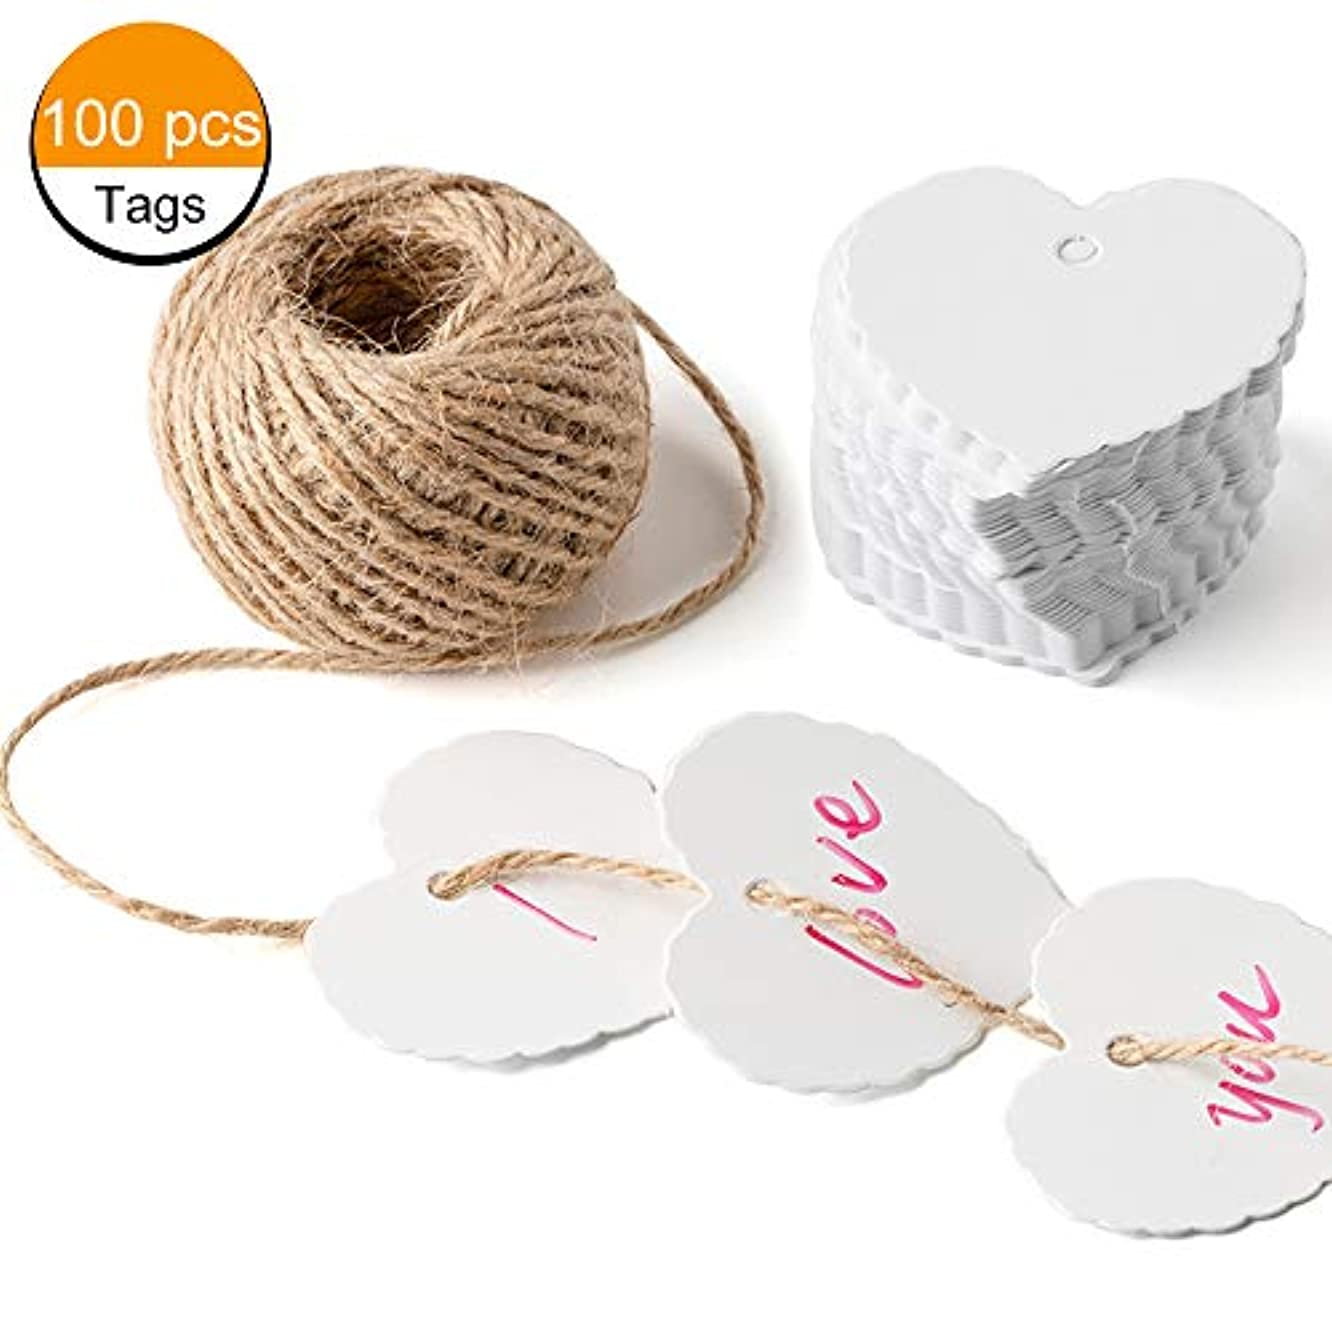 Gift Tag Blank Label Wedding Birthday Thanksgiving Gift Creative Christmas Editable Thank You Tags 100 Pcs with Natural Jute Twine,White